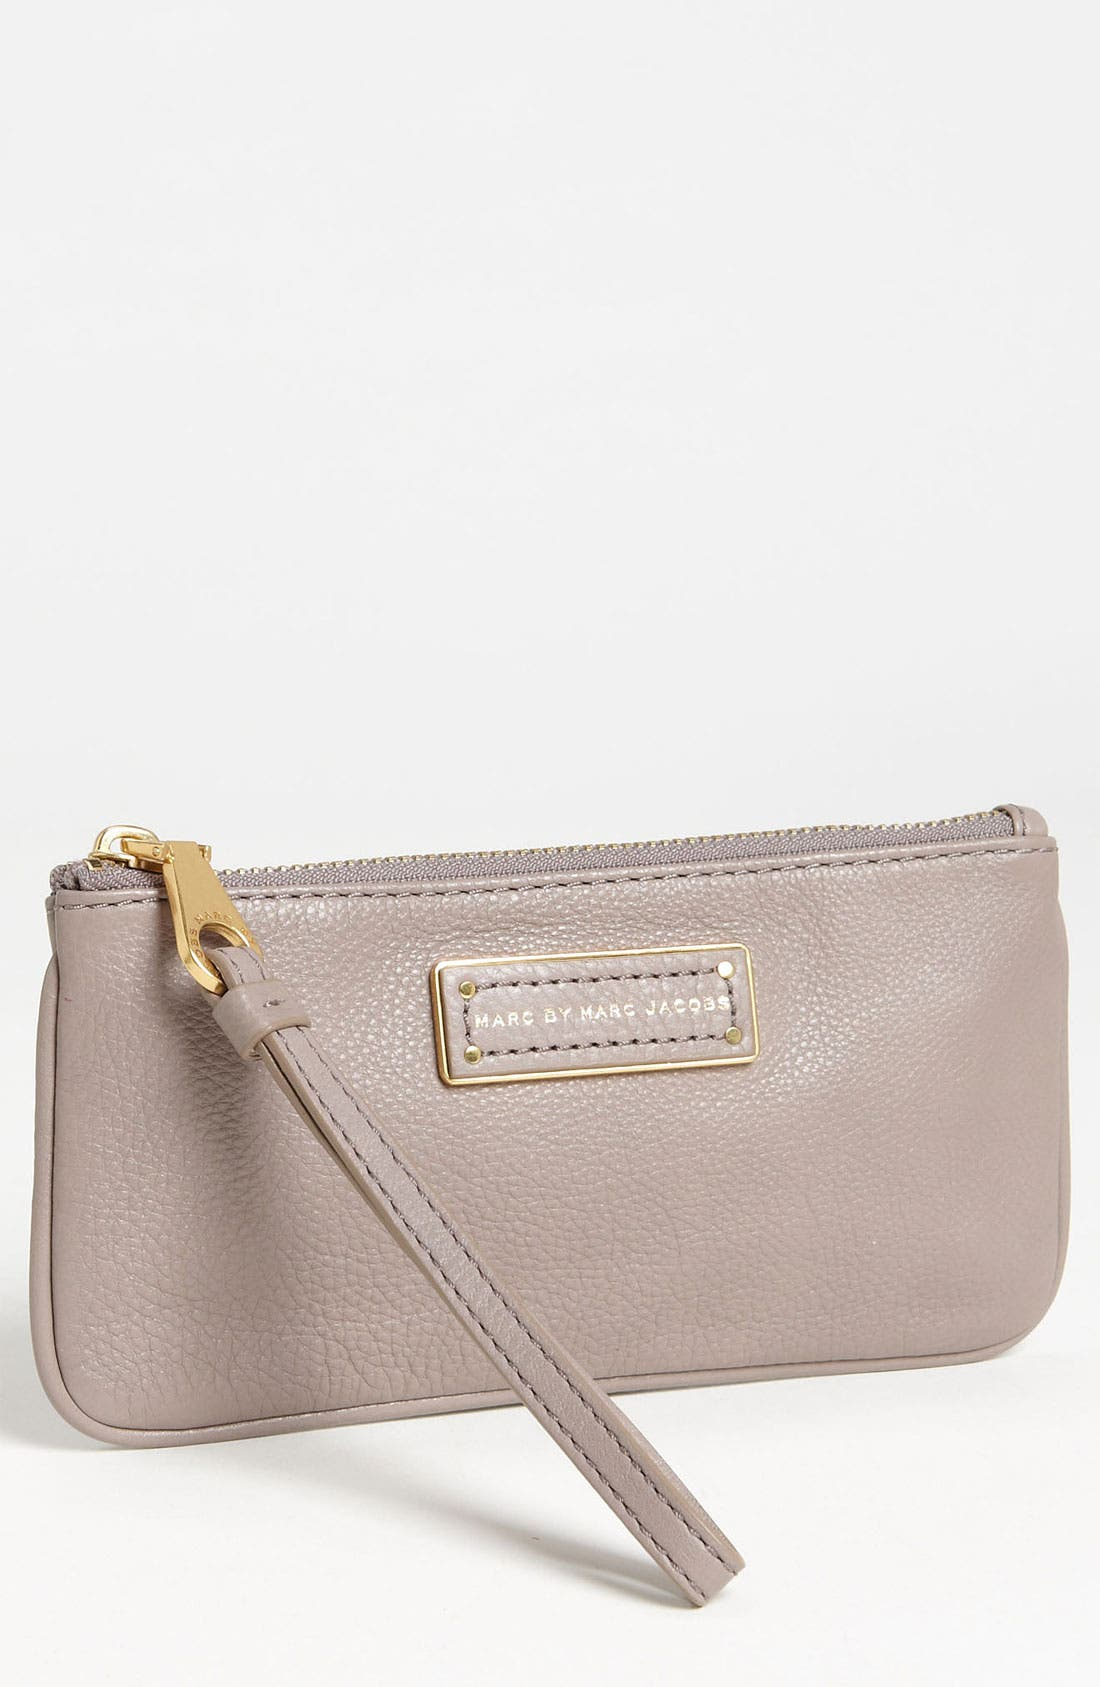 Main Image - MARC BY MARC JACOBS 'Too Hot to Handle - Banklet' Wristlet Pouch